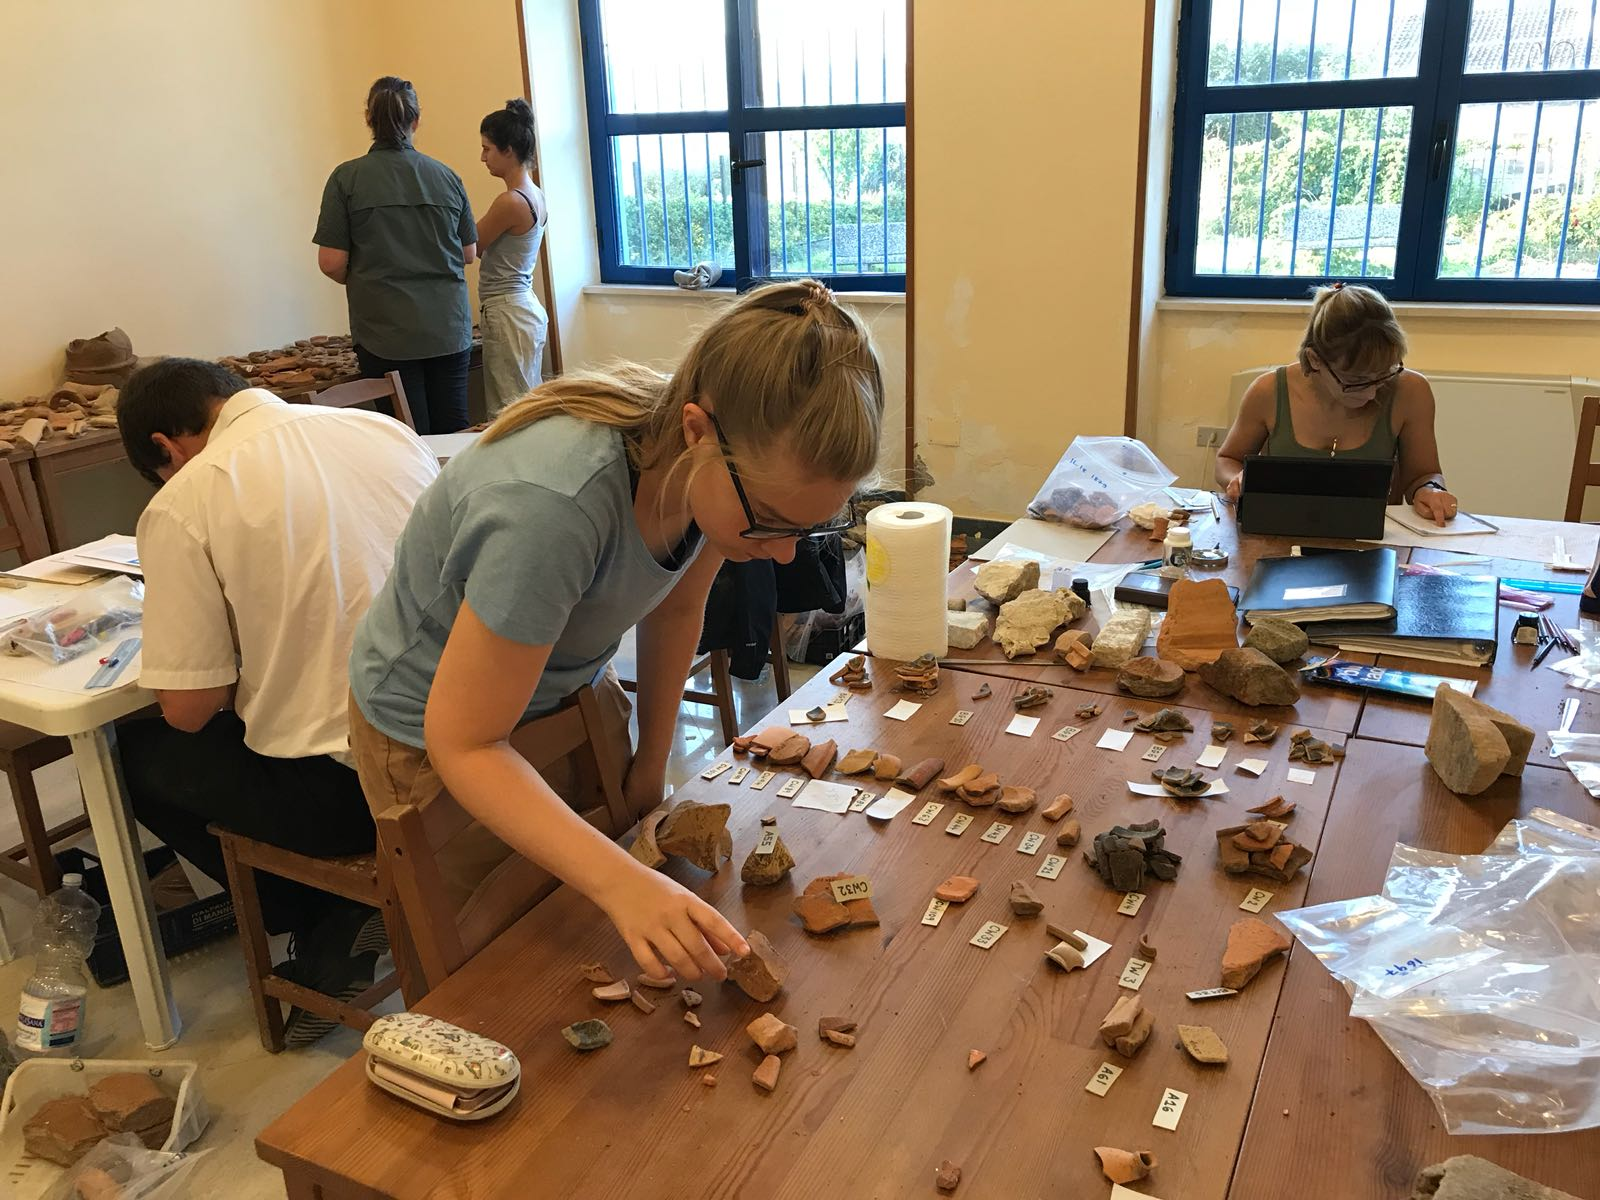 Cambridge Classics students sorting potsherds at the site of the Roman town of Interamna Lirenas